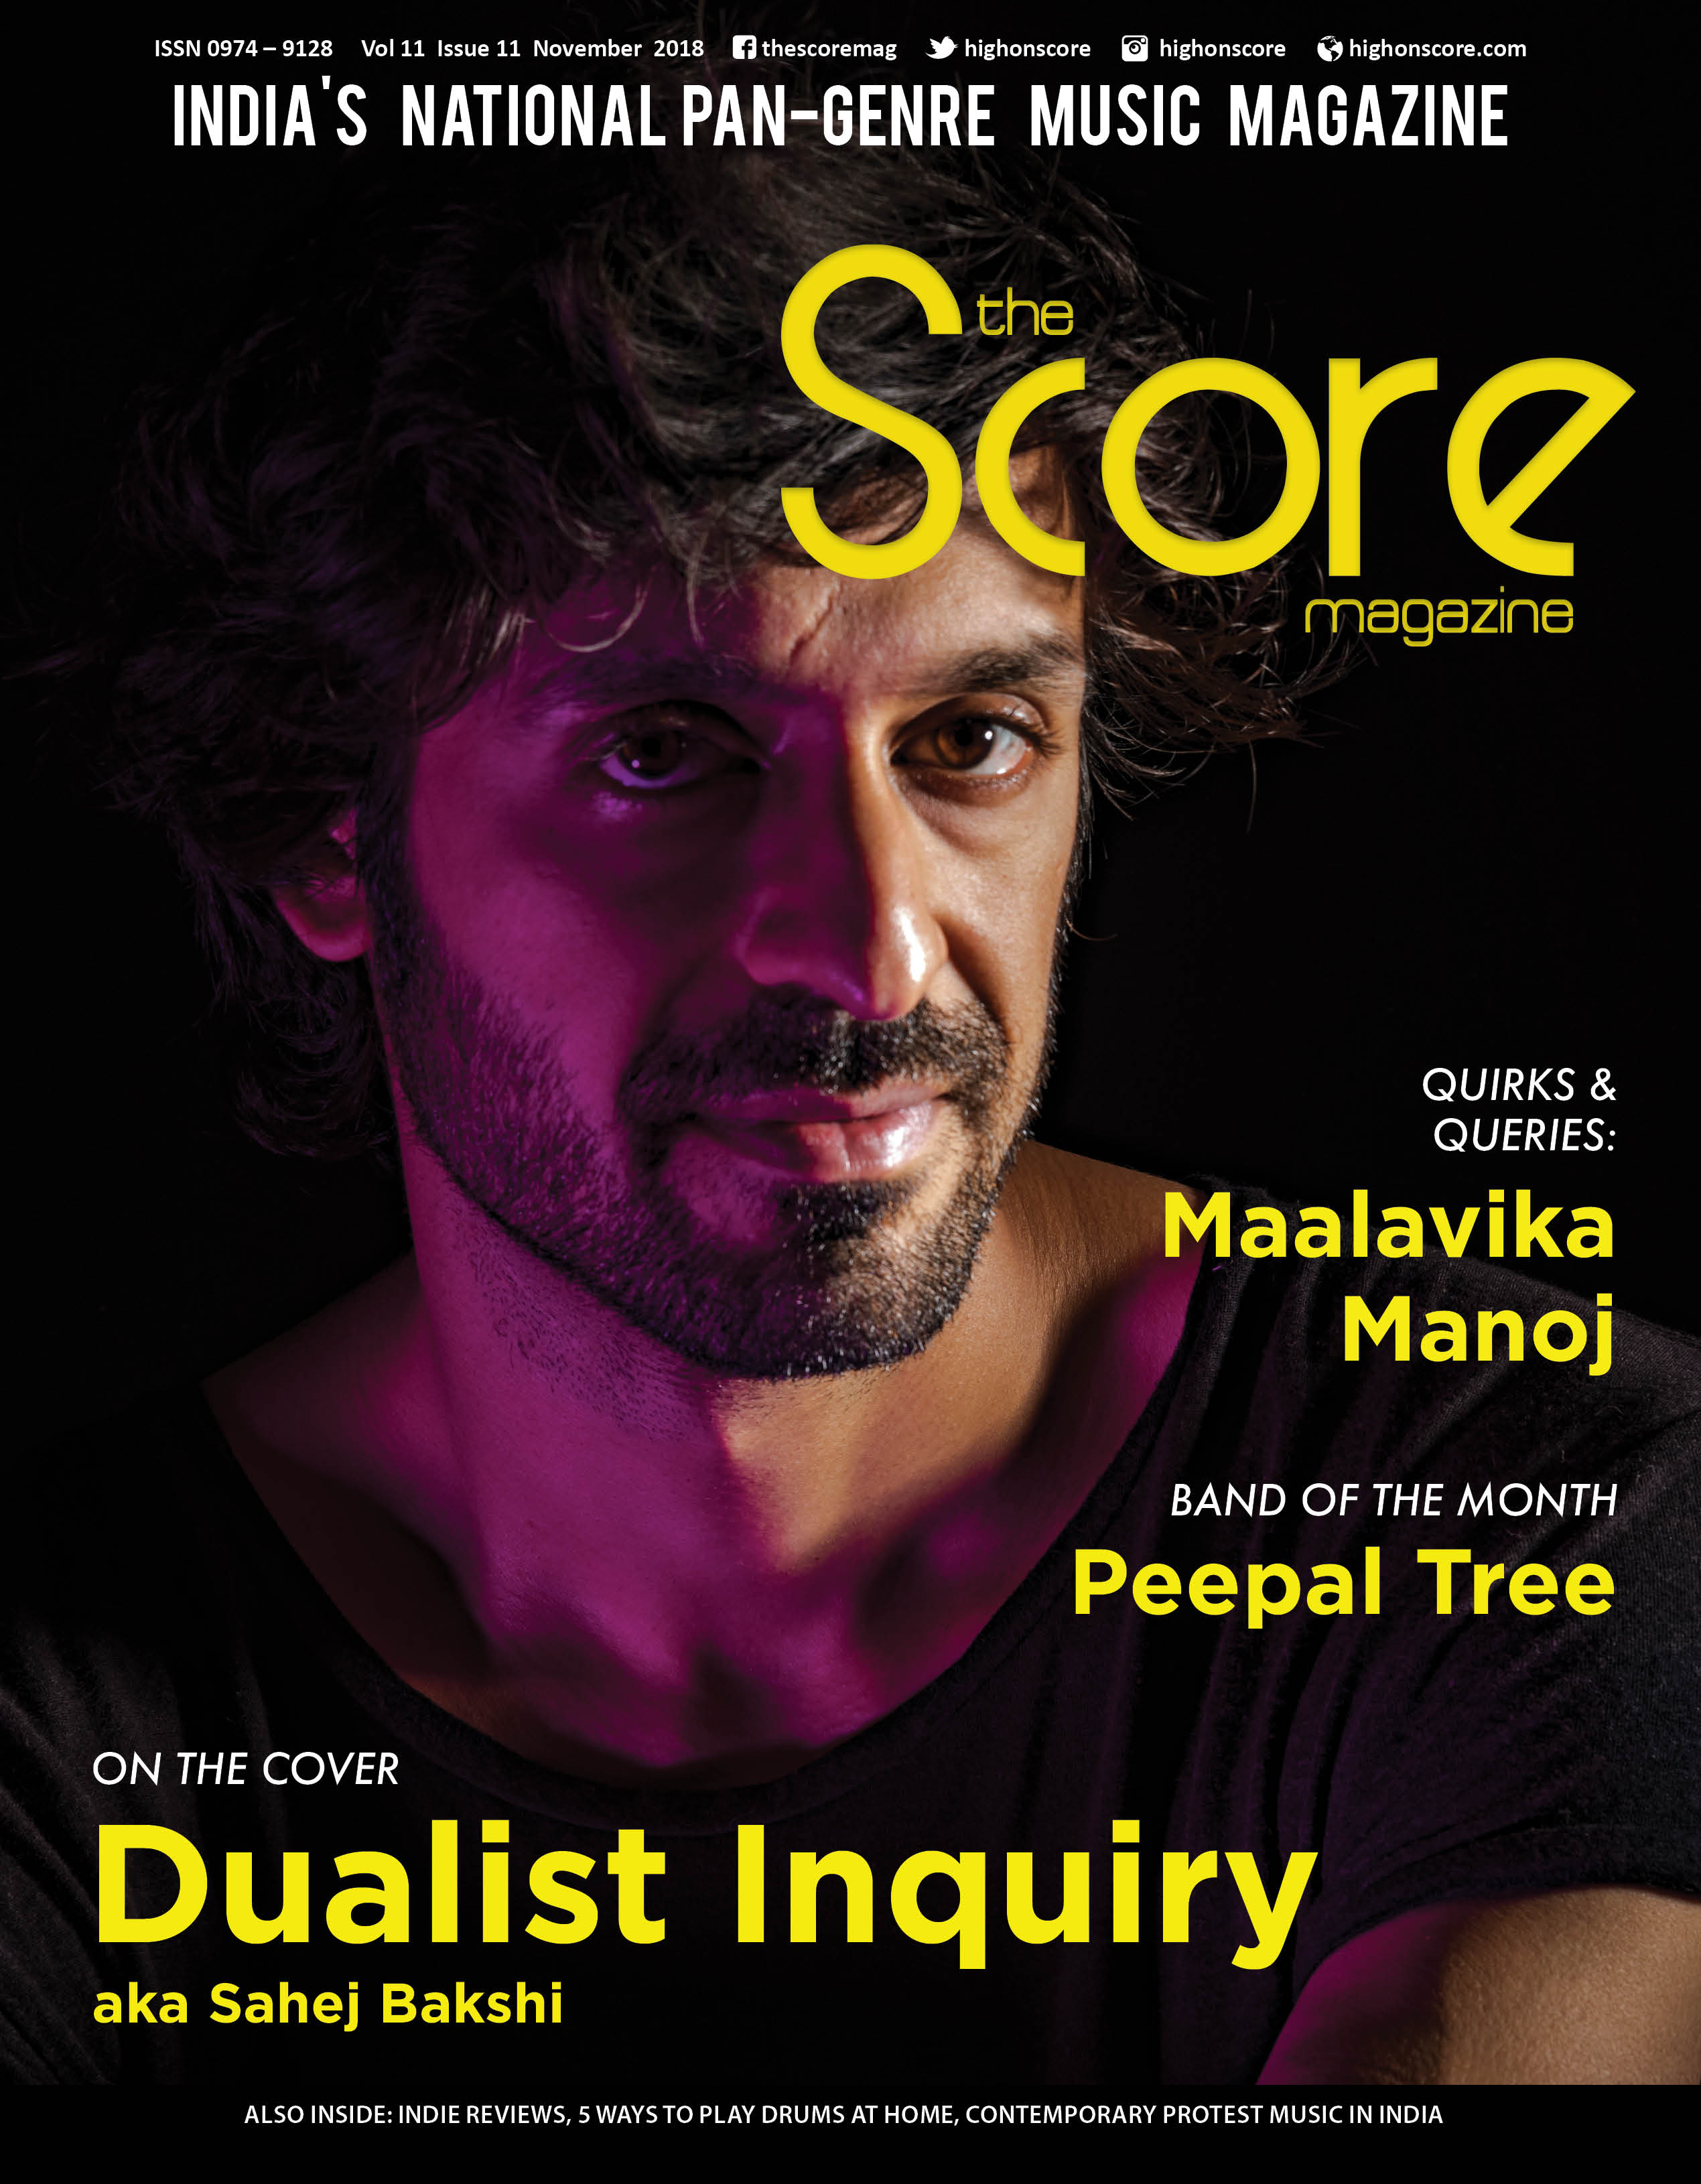 November 2018 issue featuring Dualist Inquiry aka Sahej Bakshi on the cover!